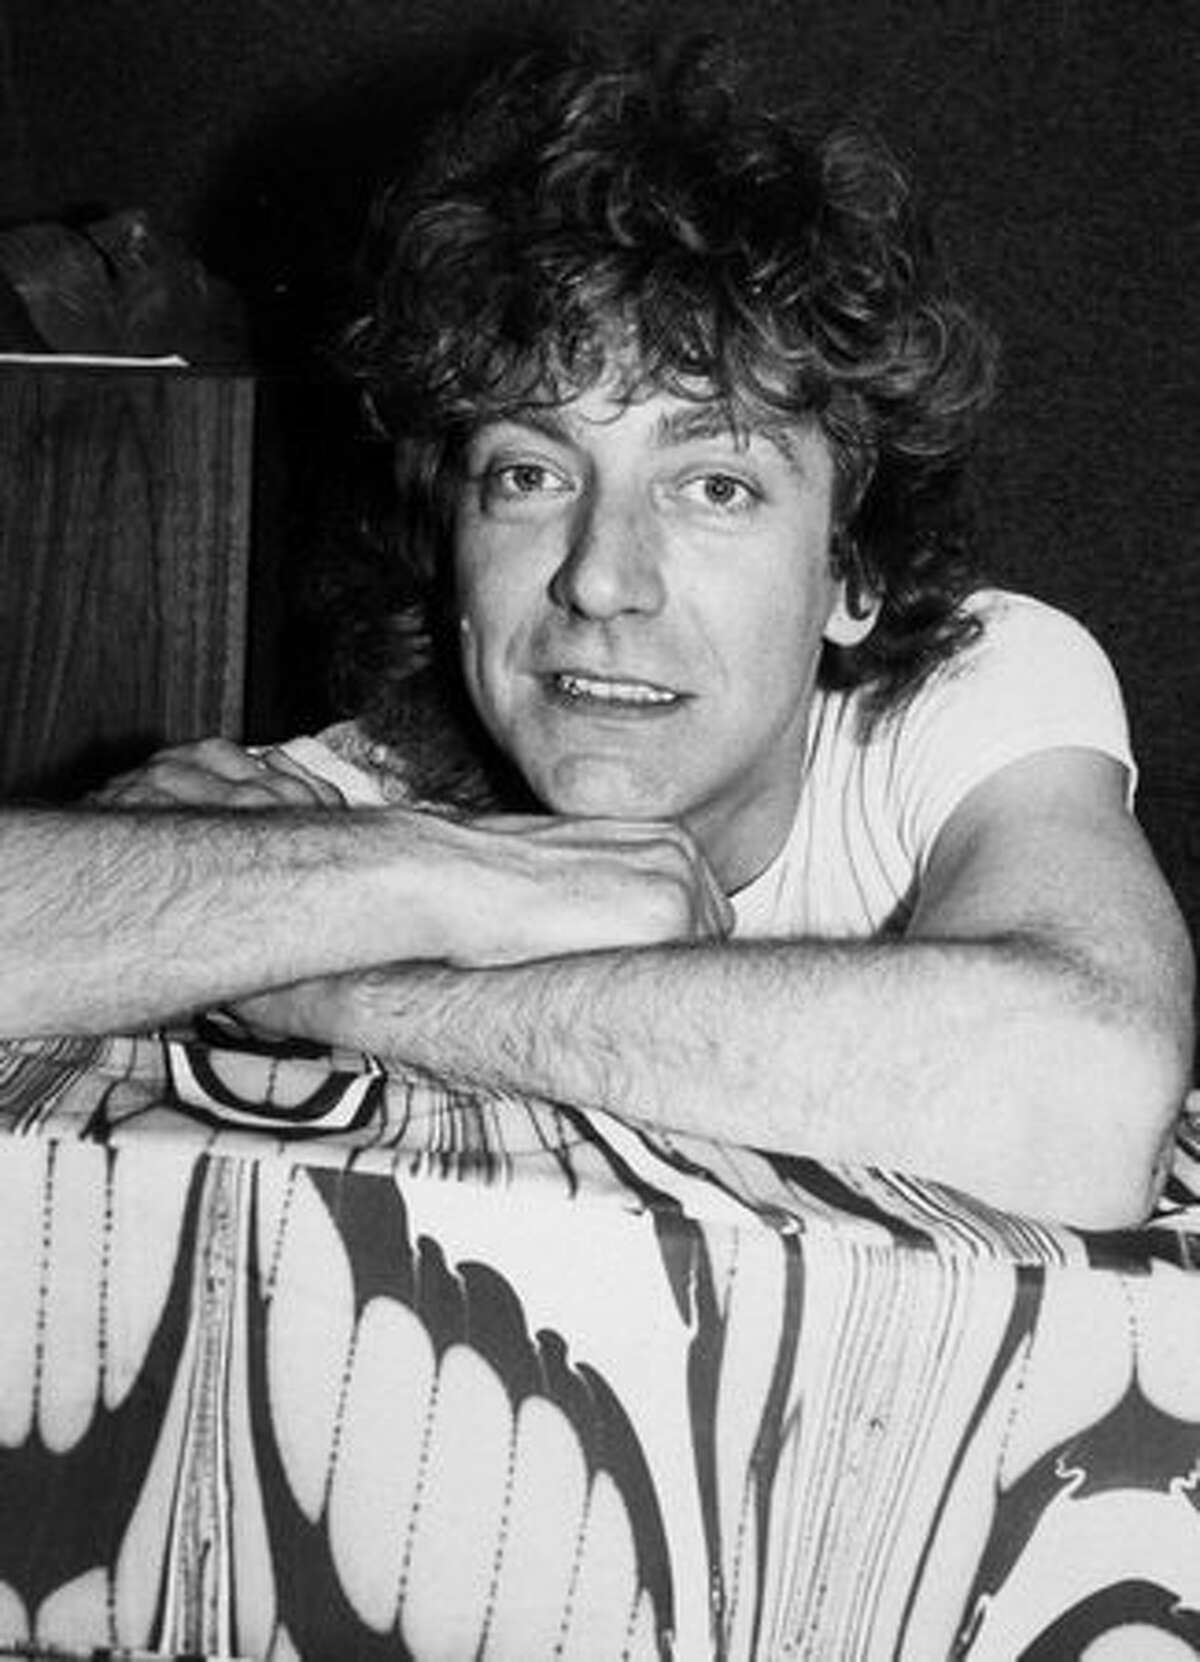 British rock singer Robert Plant poses leaning on the back of a sofa, 1982.